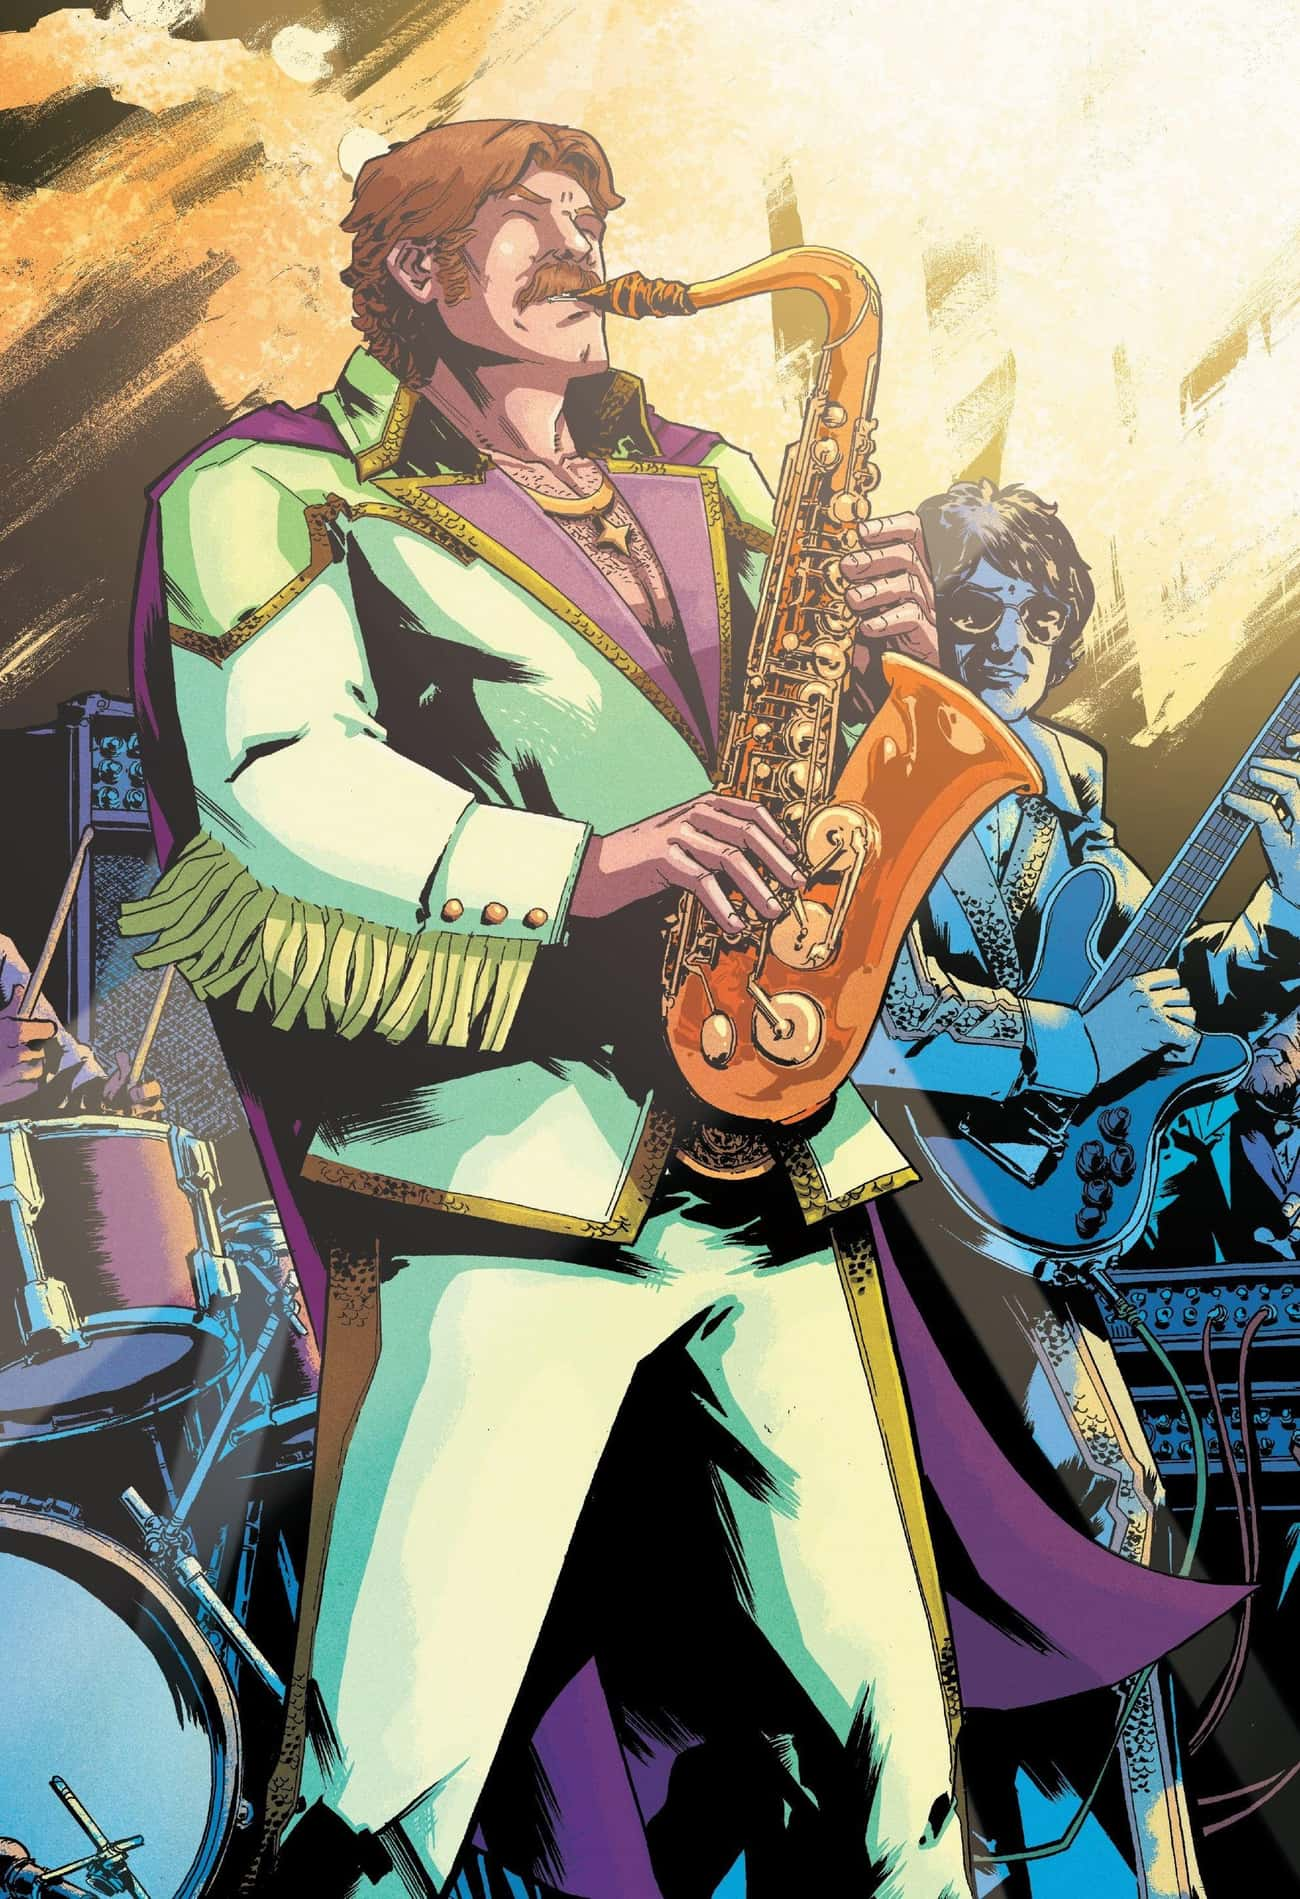 Drax Was A Human Saxophone Player Empowered To Take Cosmic Revenge On Thanos